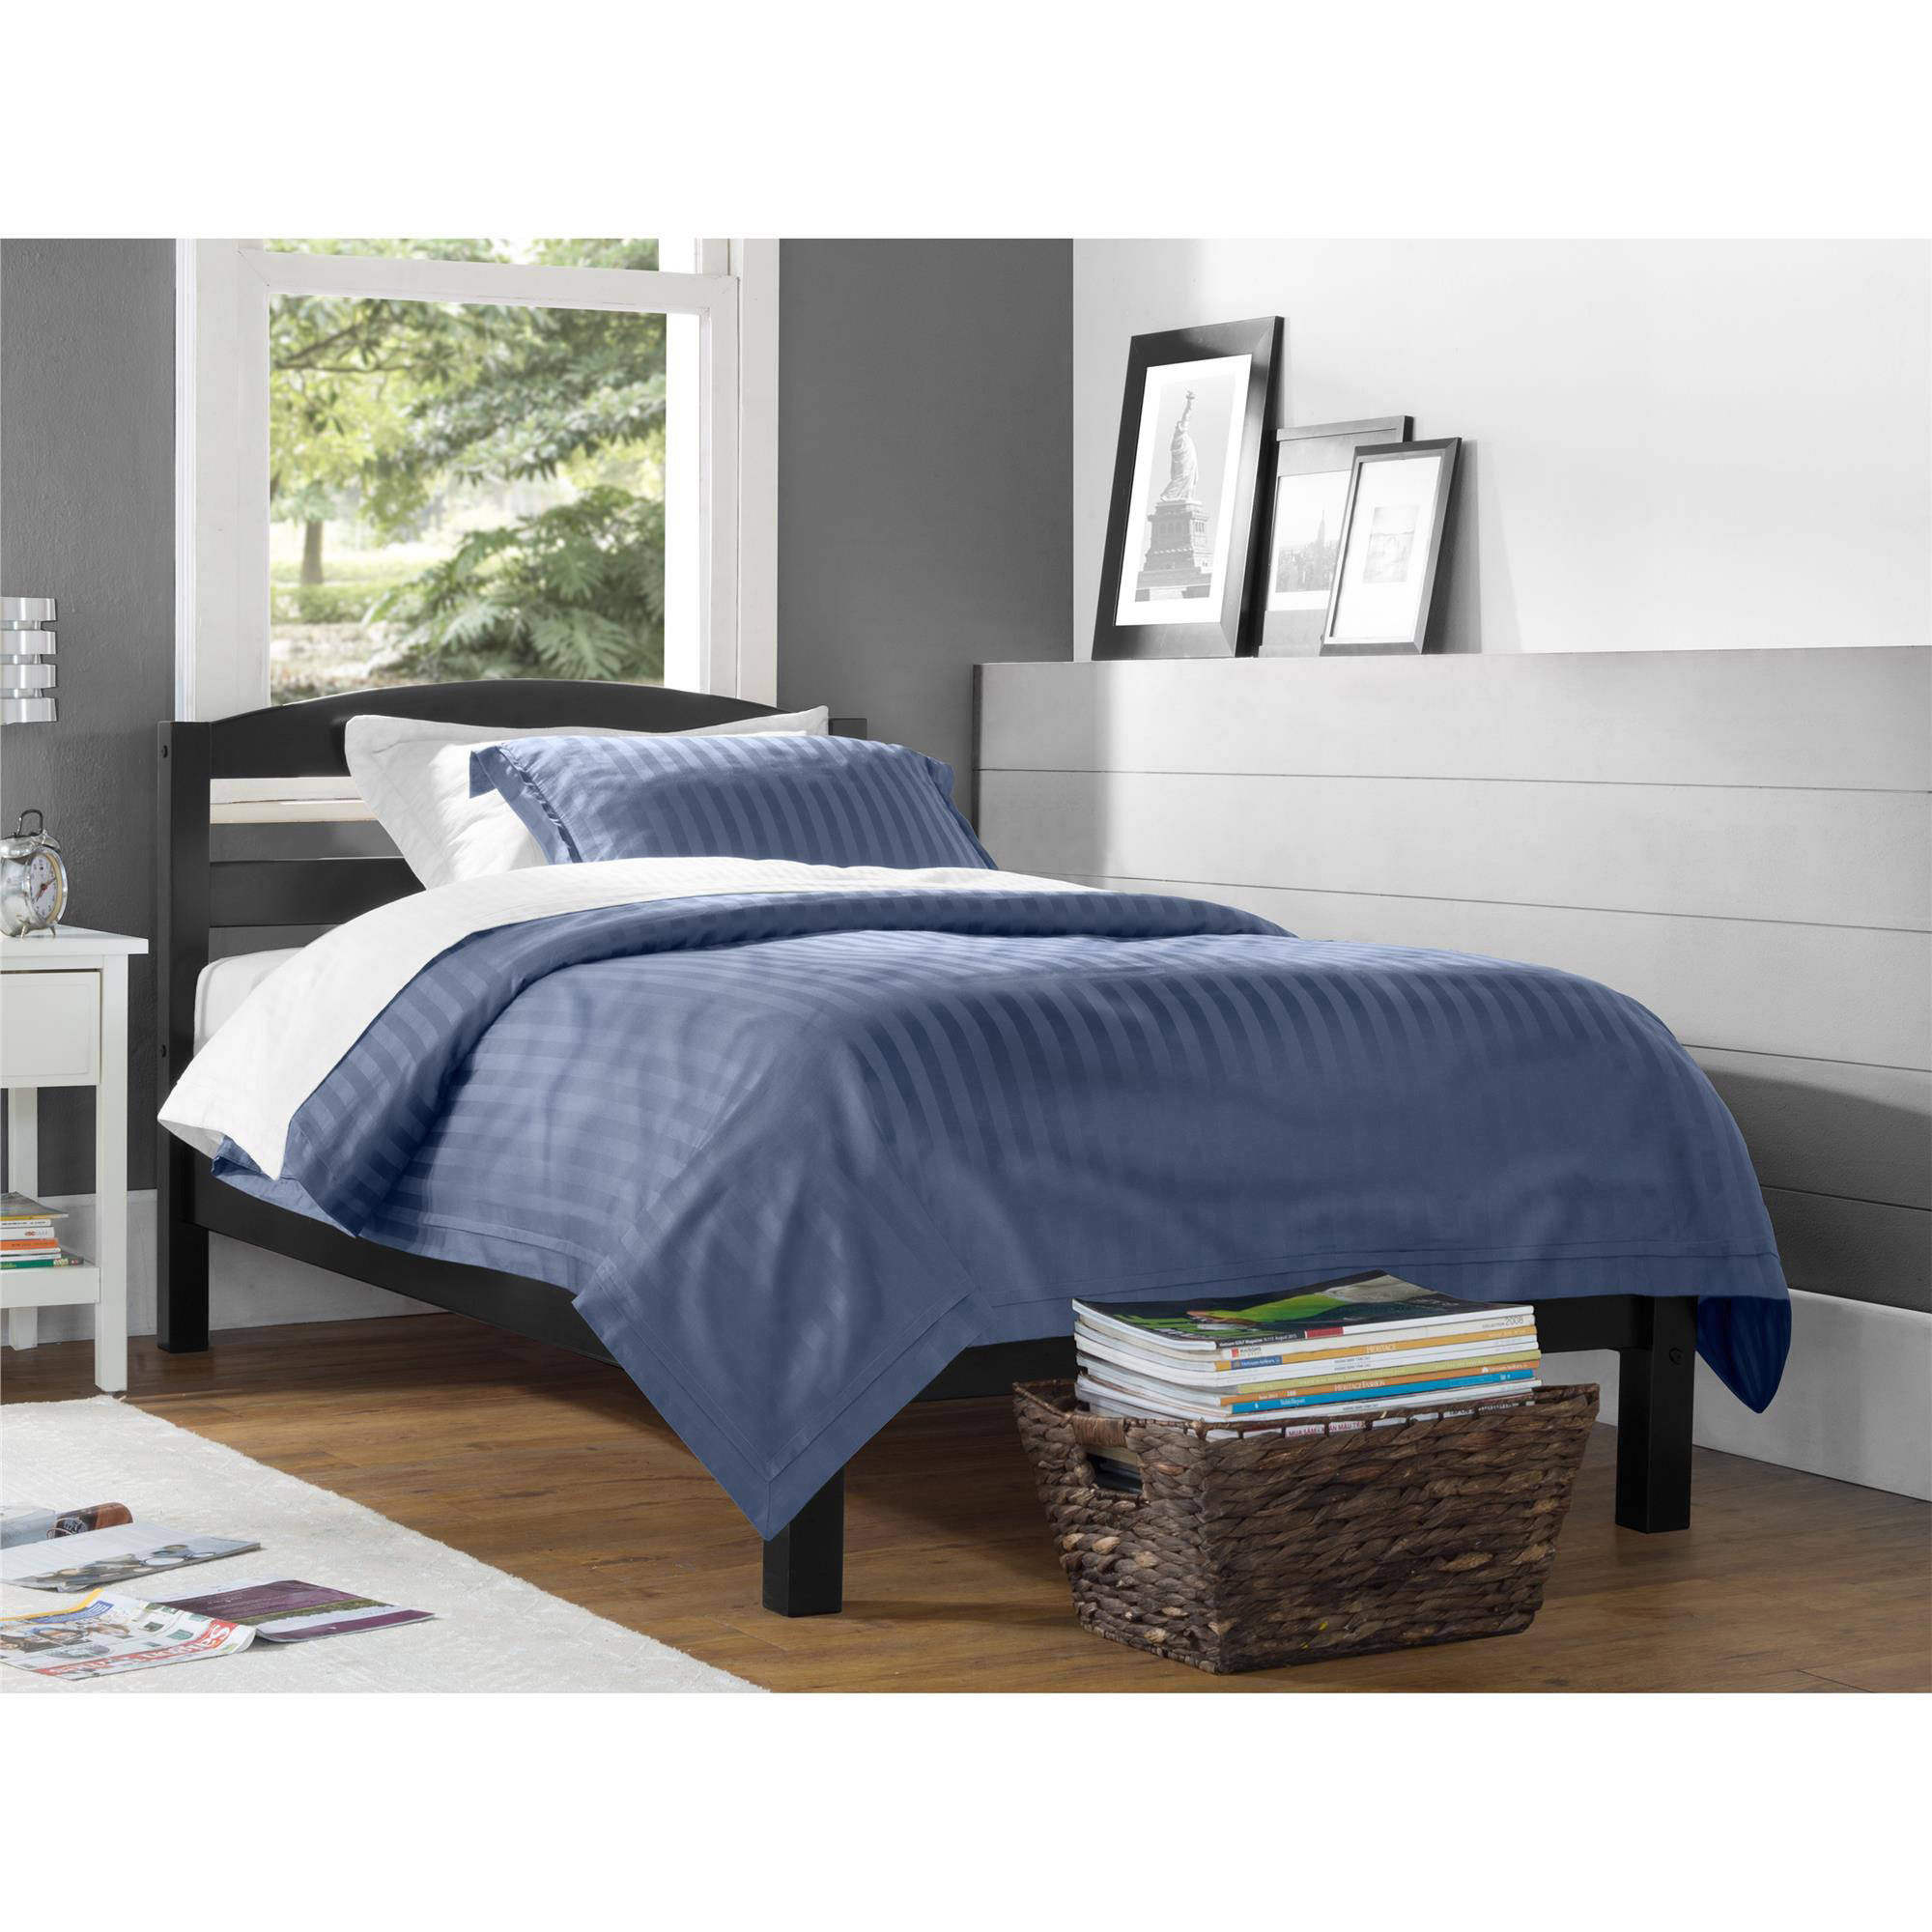 Better Homes and Gardens Leighton Twin Bed, Multiple Colors